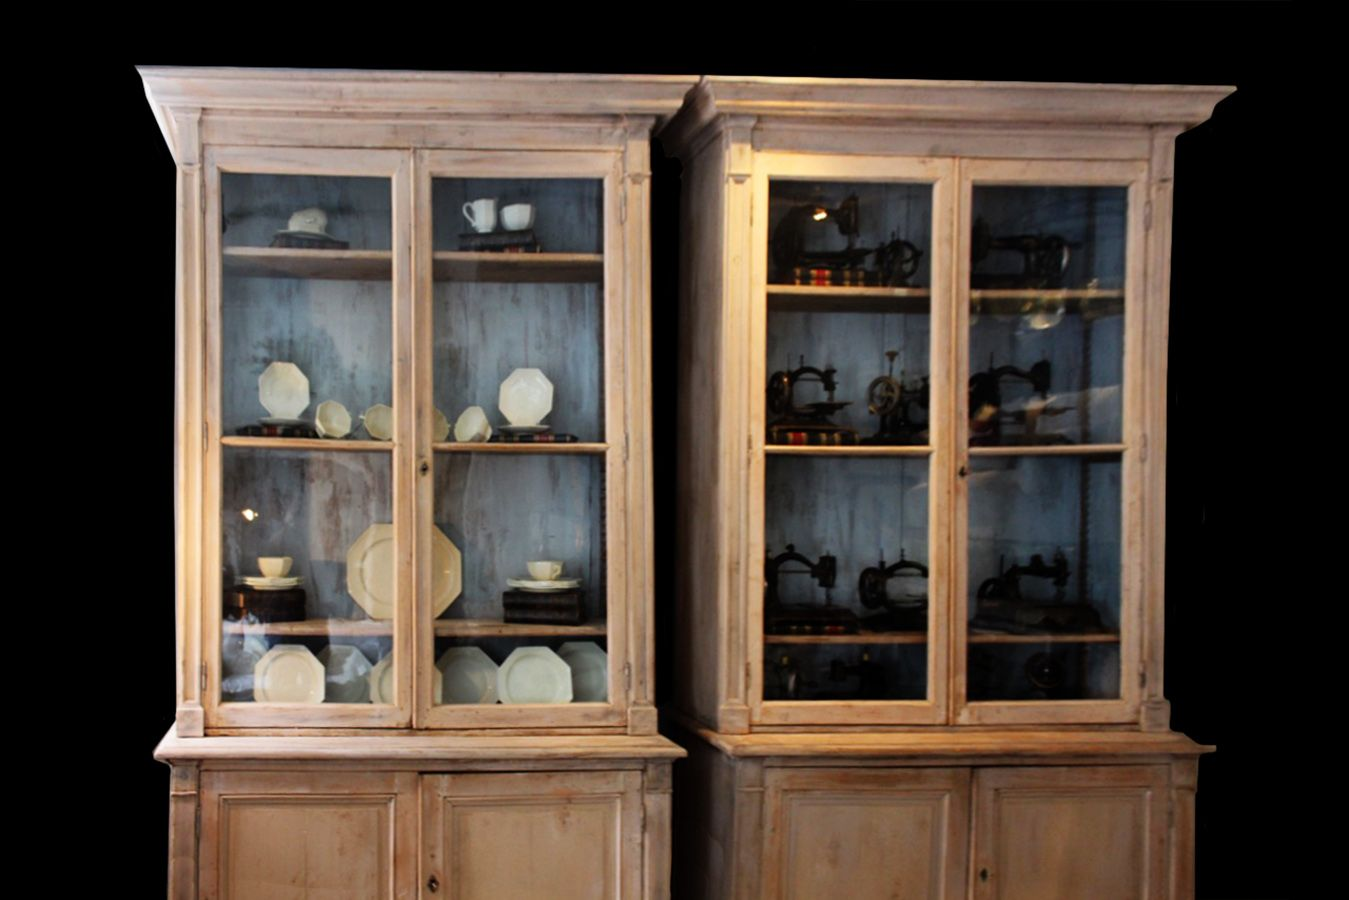 Antique French Pharmacy Cabinets, Set Of 2